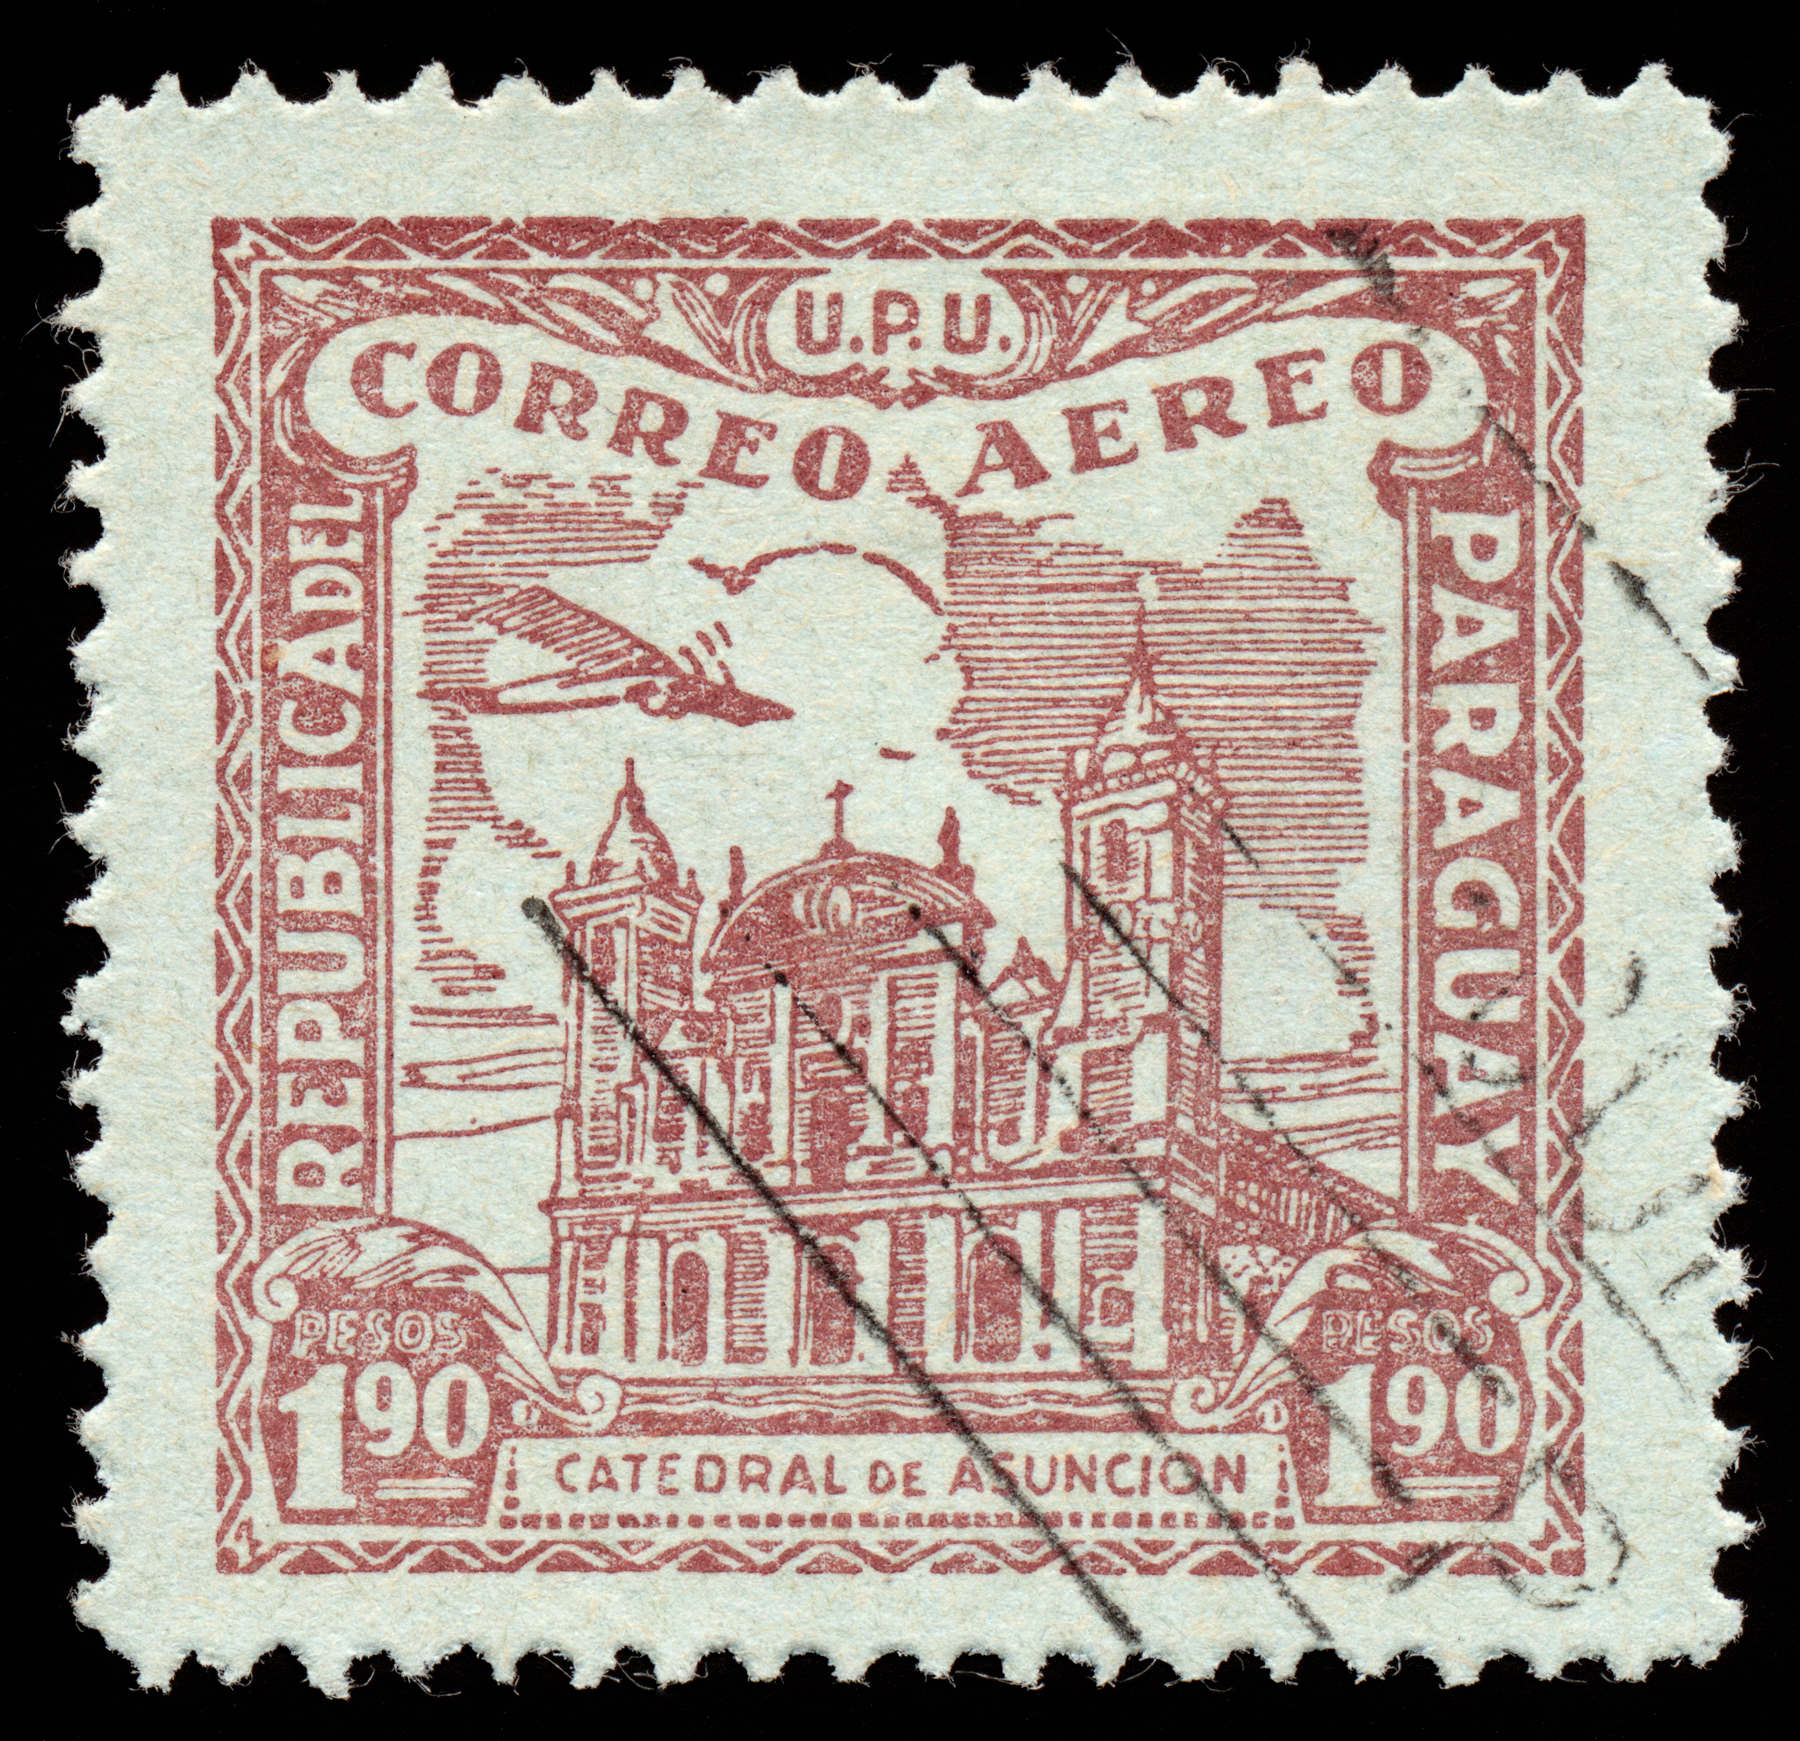 Brown asuncion cathedral airmail stamp photo